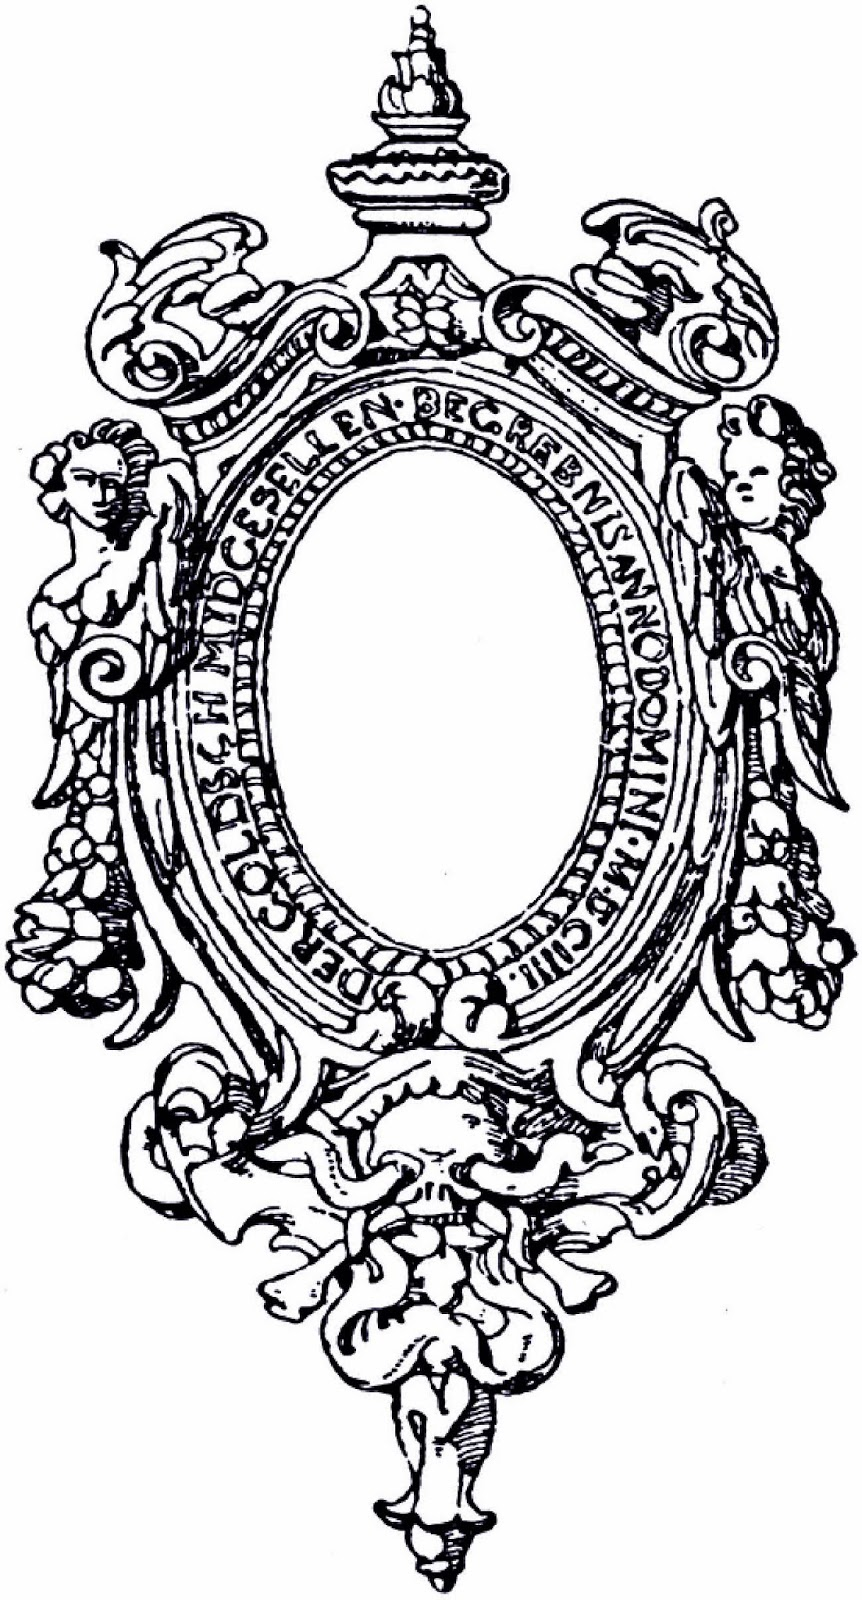 free printable ornate renaissance oval frame